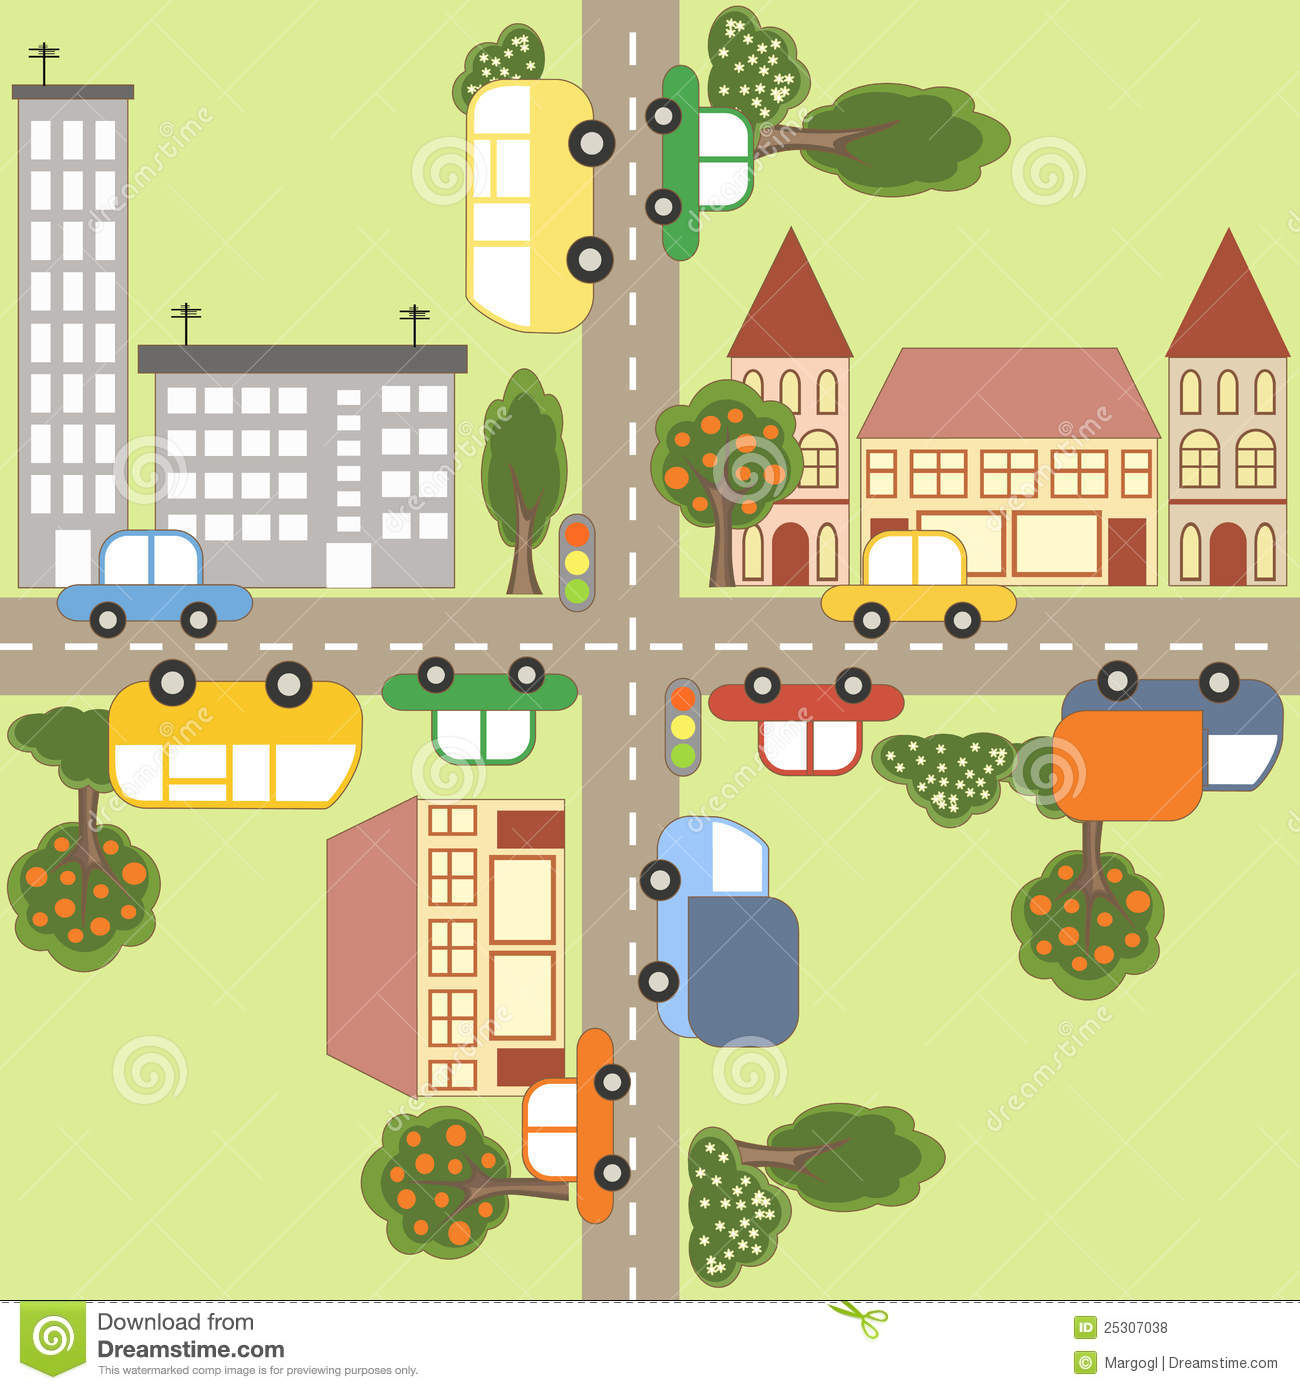 Free Small House Plans Cartoon Town Map Stock Vector Illustration Of City